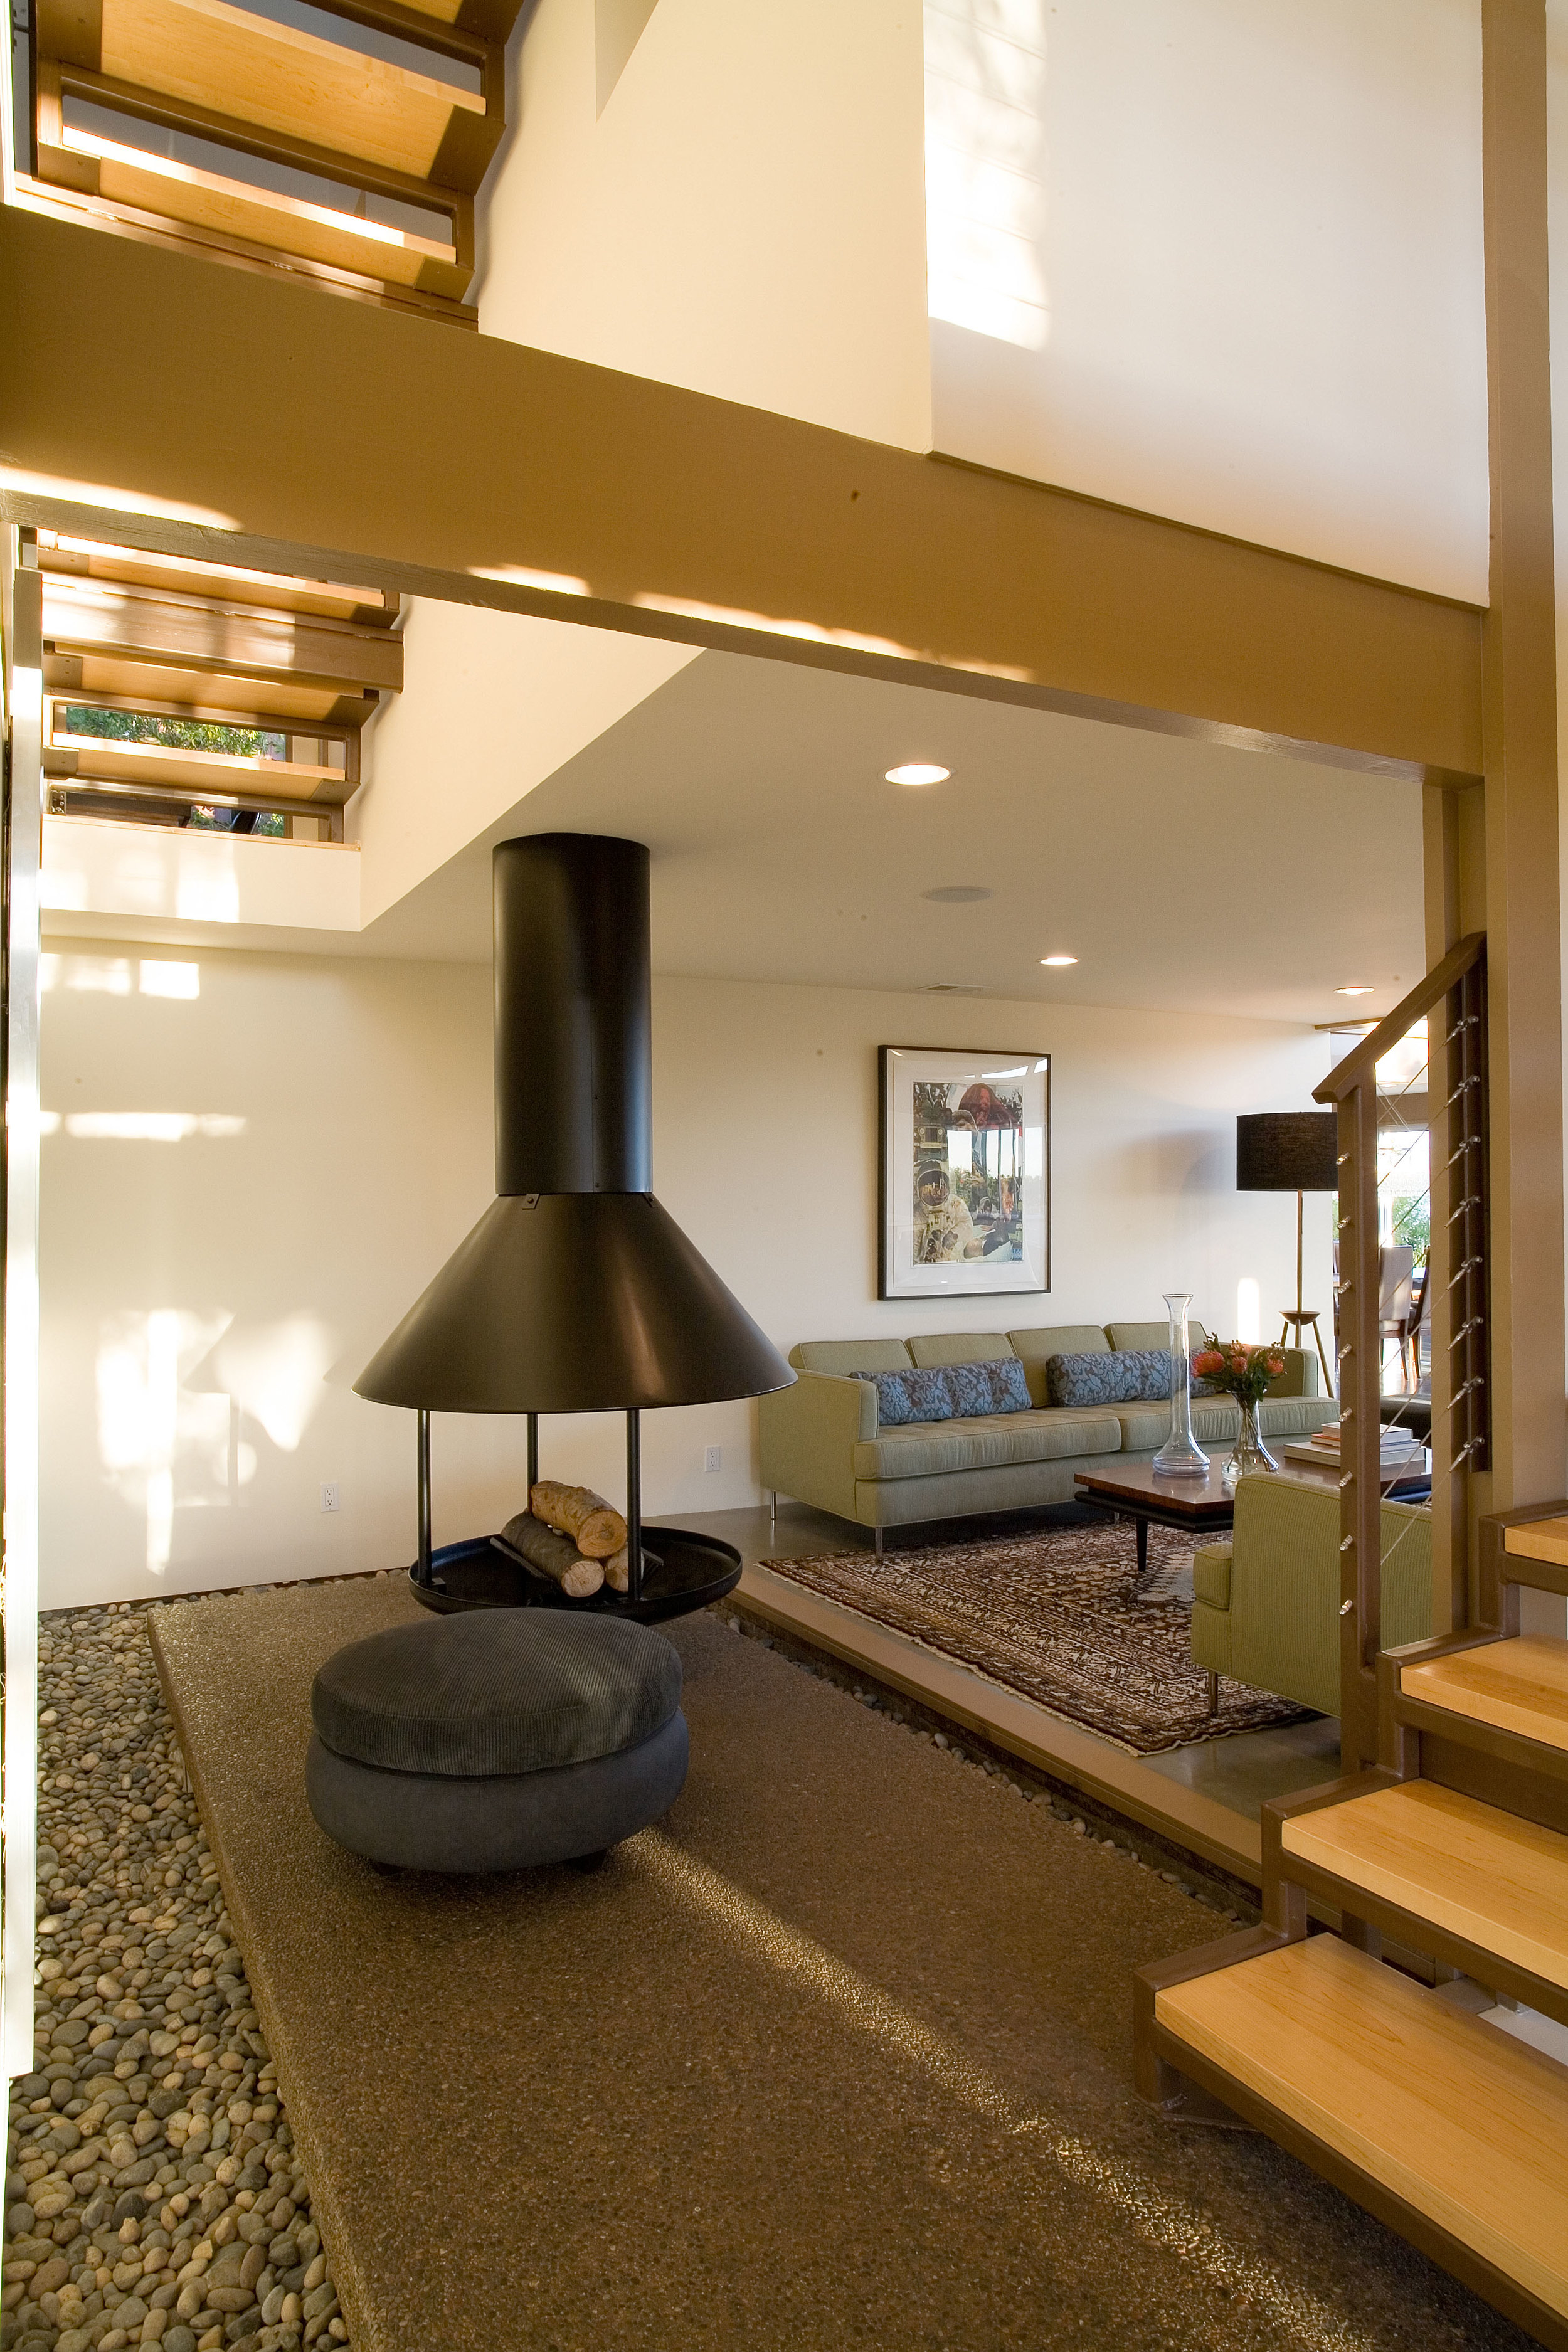 S.E.A.-Studio-Environmental-Architecture-David-Hertz-FAIA-Buff-Hensman-Bel-Air-historic-preservation-sustainable-regenerative-restorative-design-remodel-midcentury-modern-case-study-house-vintage-residential-contemporary-addition-hollywood-hills-4.jpg